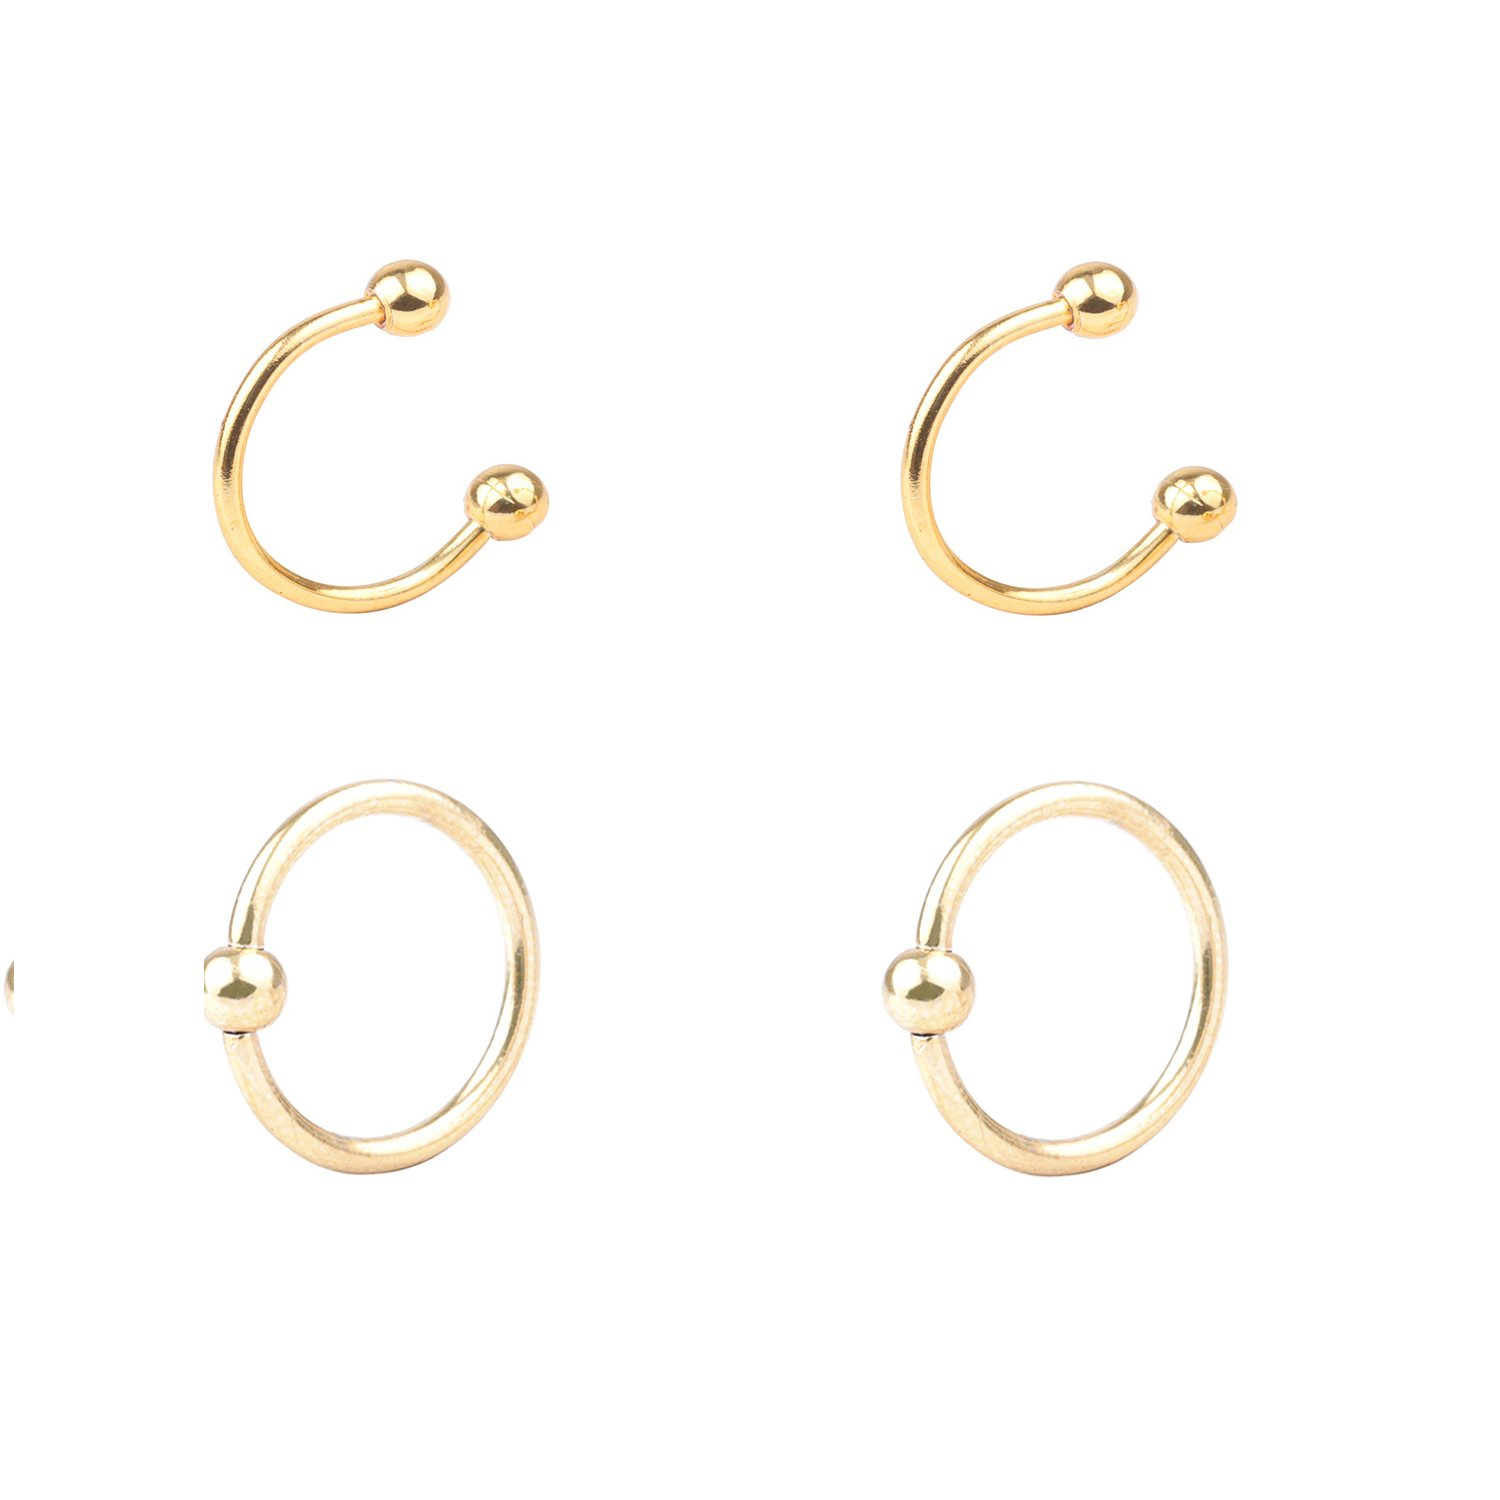 DRS 4-8pcs 16G Stainless Steel Multi-functional LipNoseNippleEyebrown Captive Hoop Ring Barbell Tragus Cartilage Stud Earrings 3mm Ball 10mm